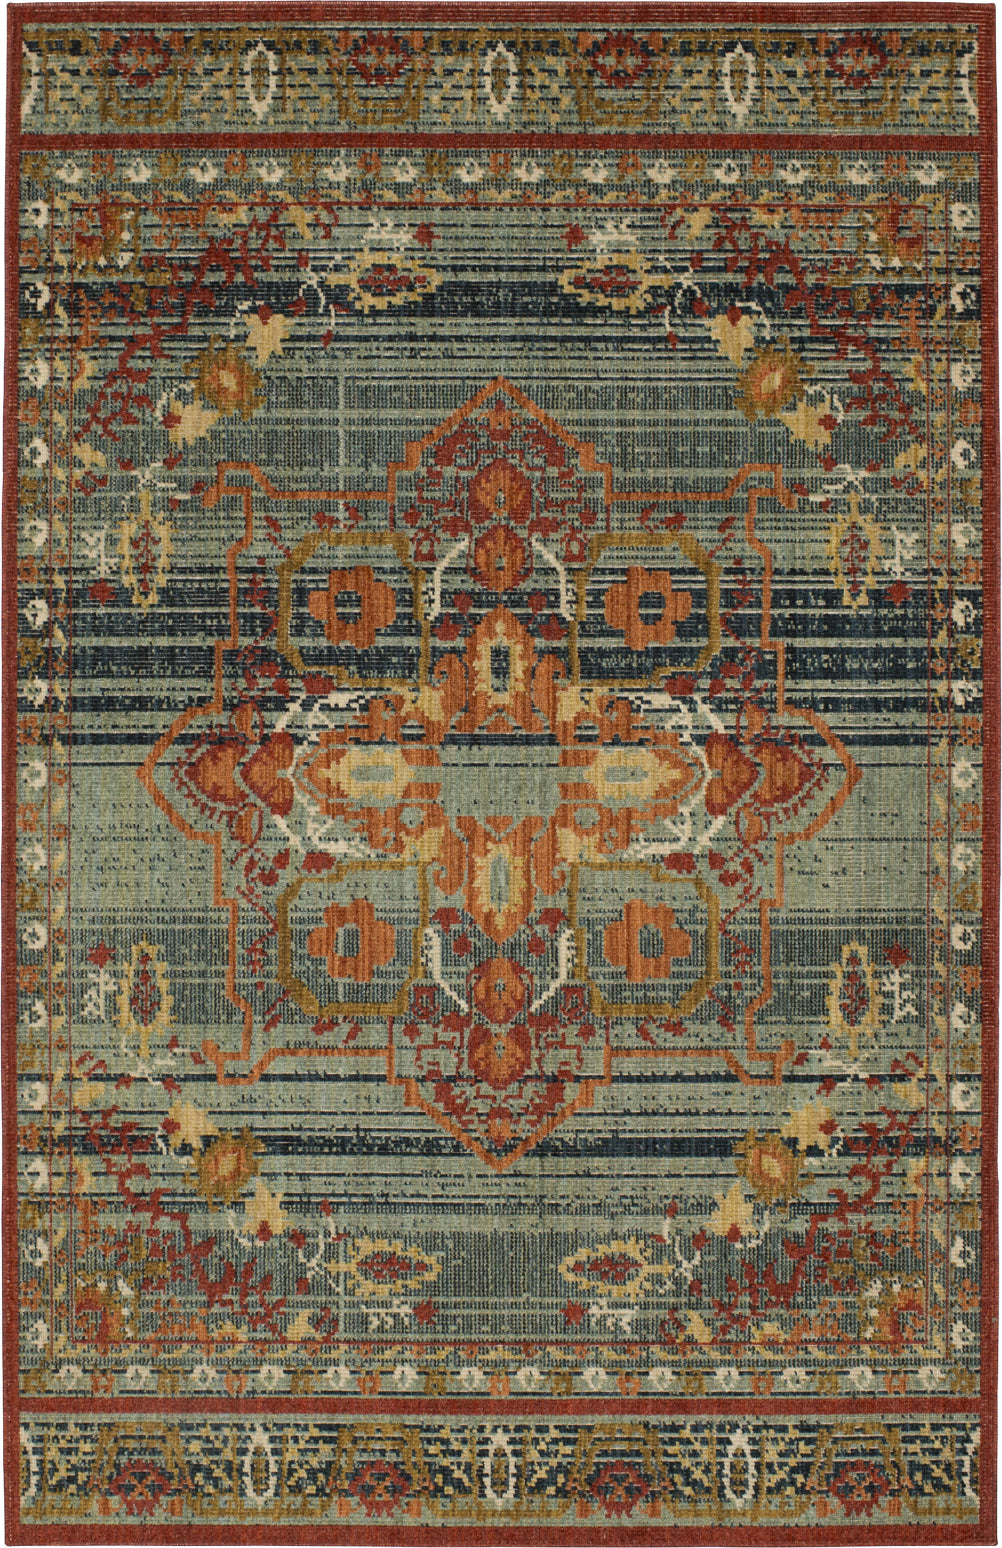 Karastan Vintage Tapis Left Bank Garnet Multi Area Rug by Patina Vie main image